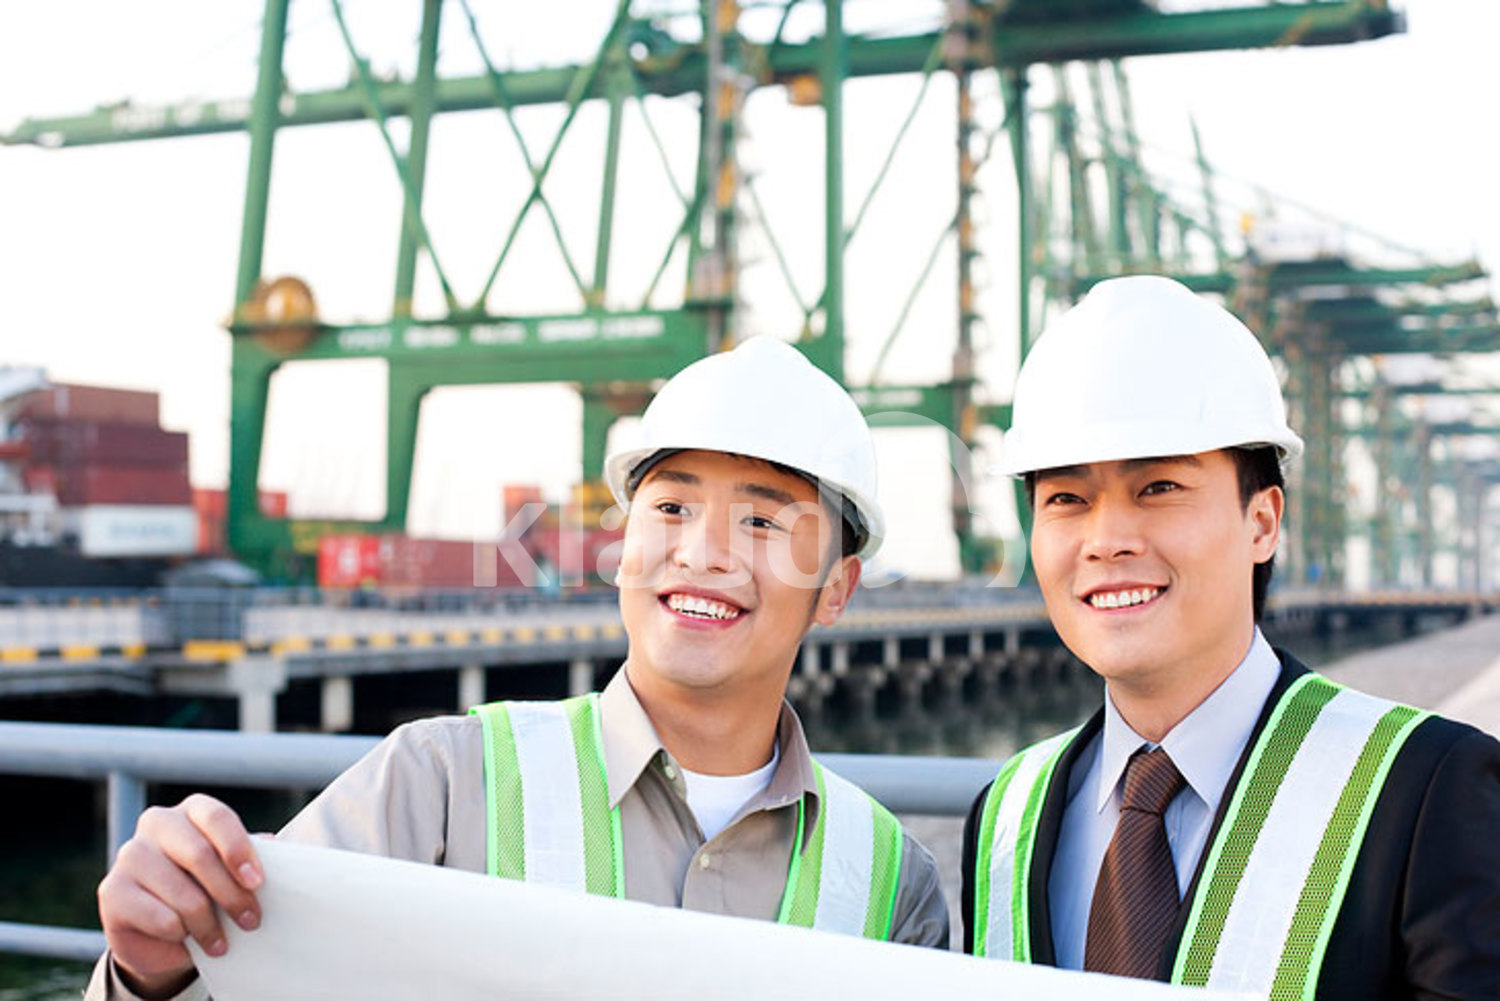 Chinese shipping industry professionals looking over blueprints